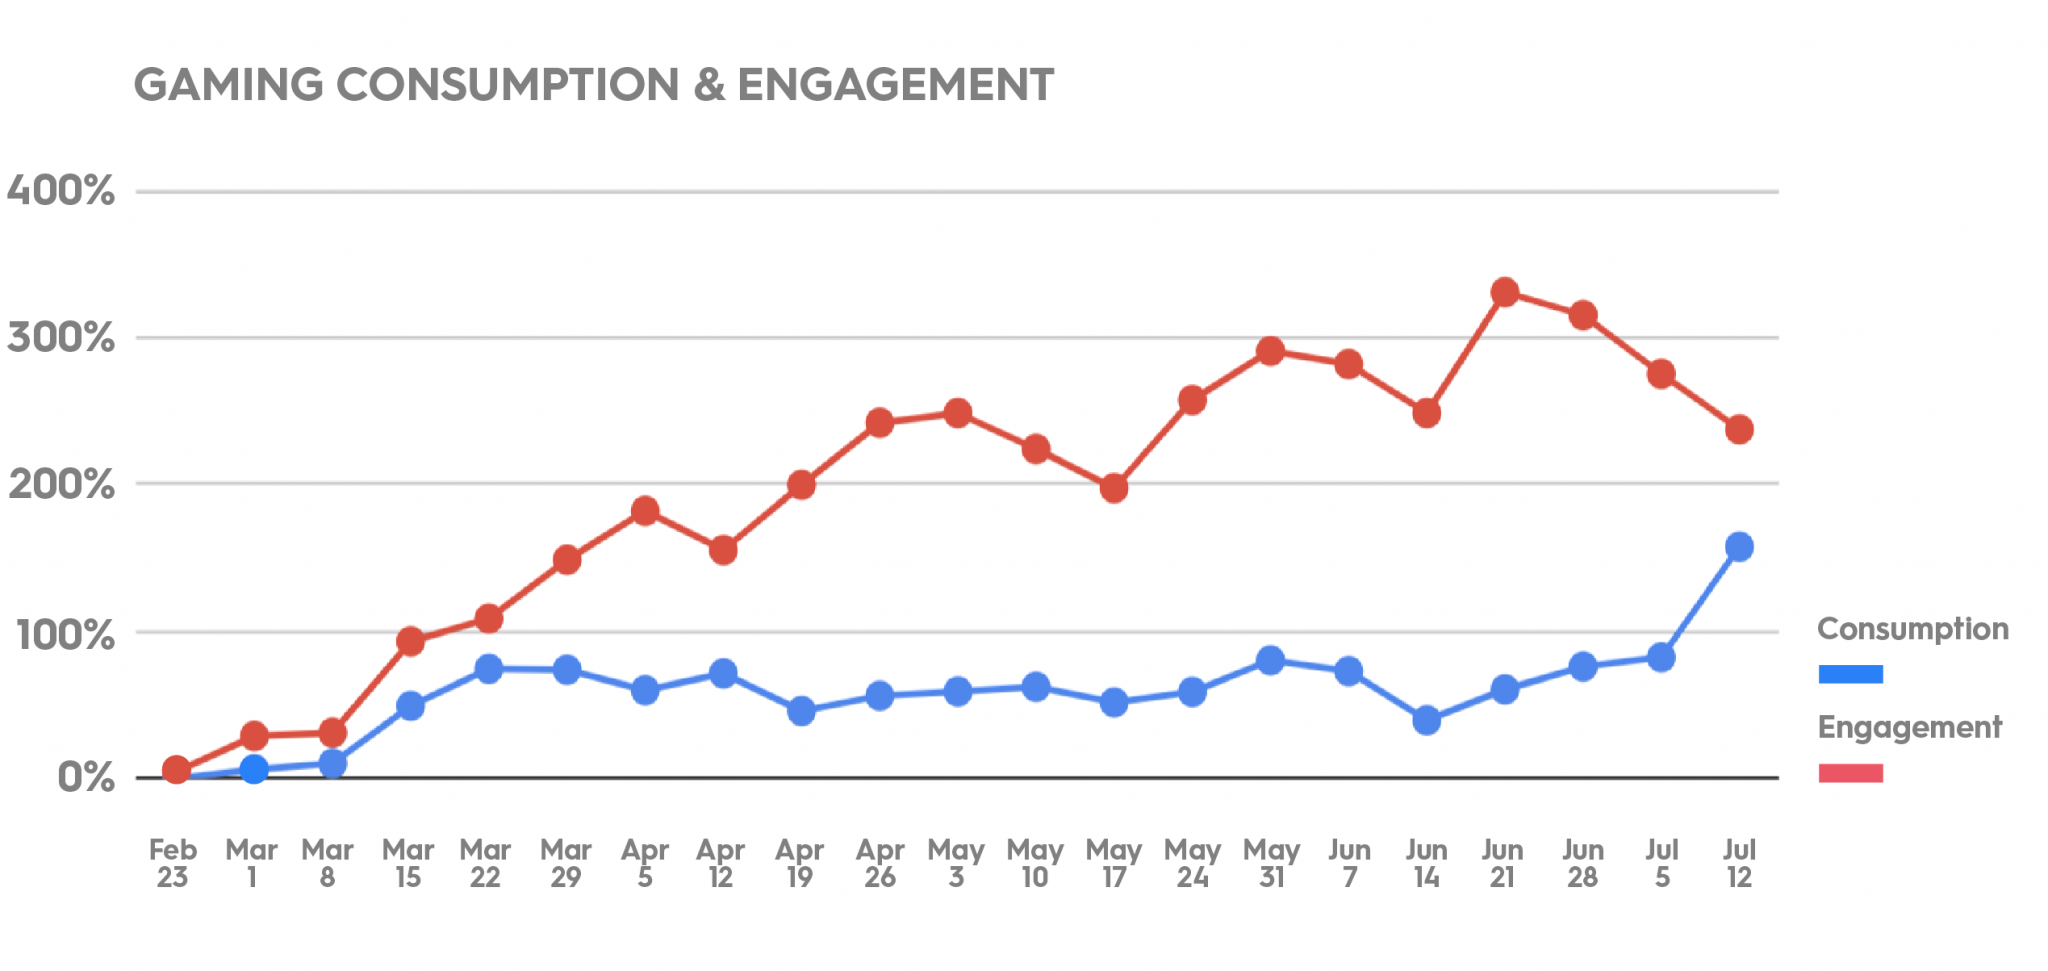 Gaming consumption and engagement